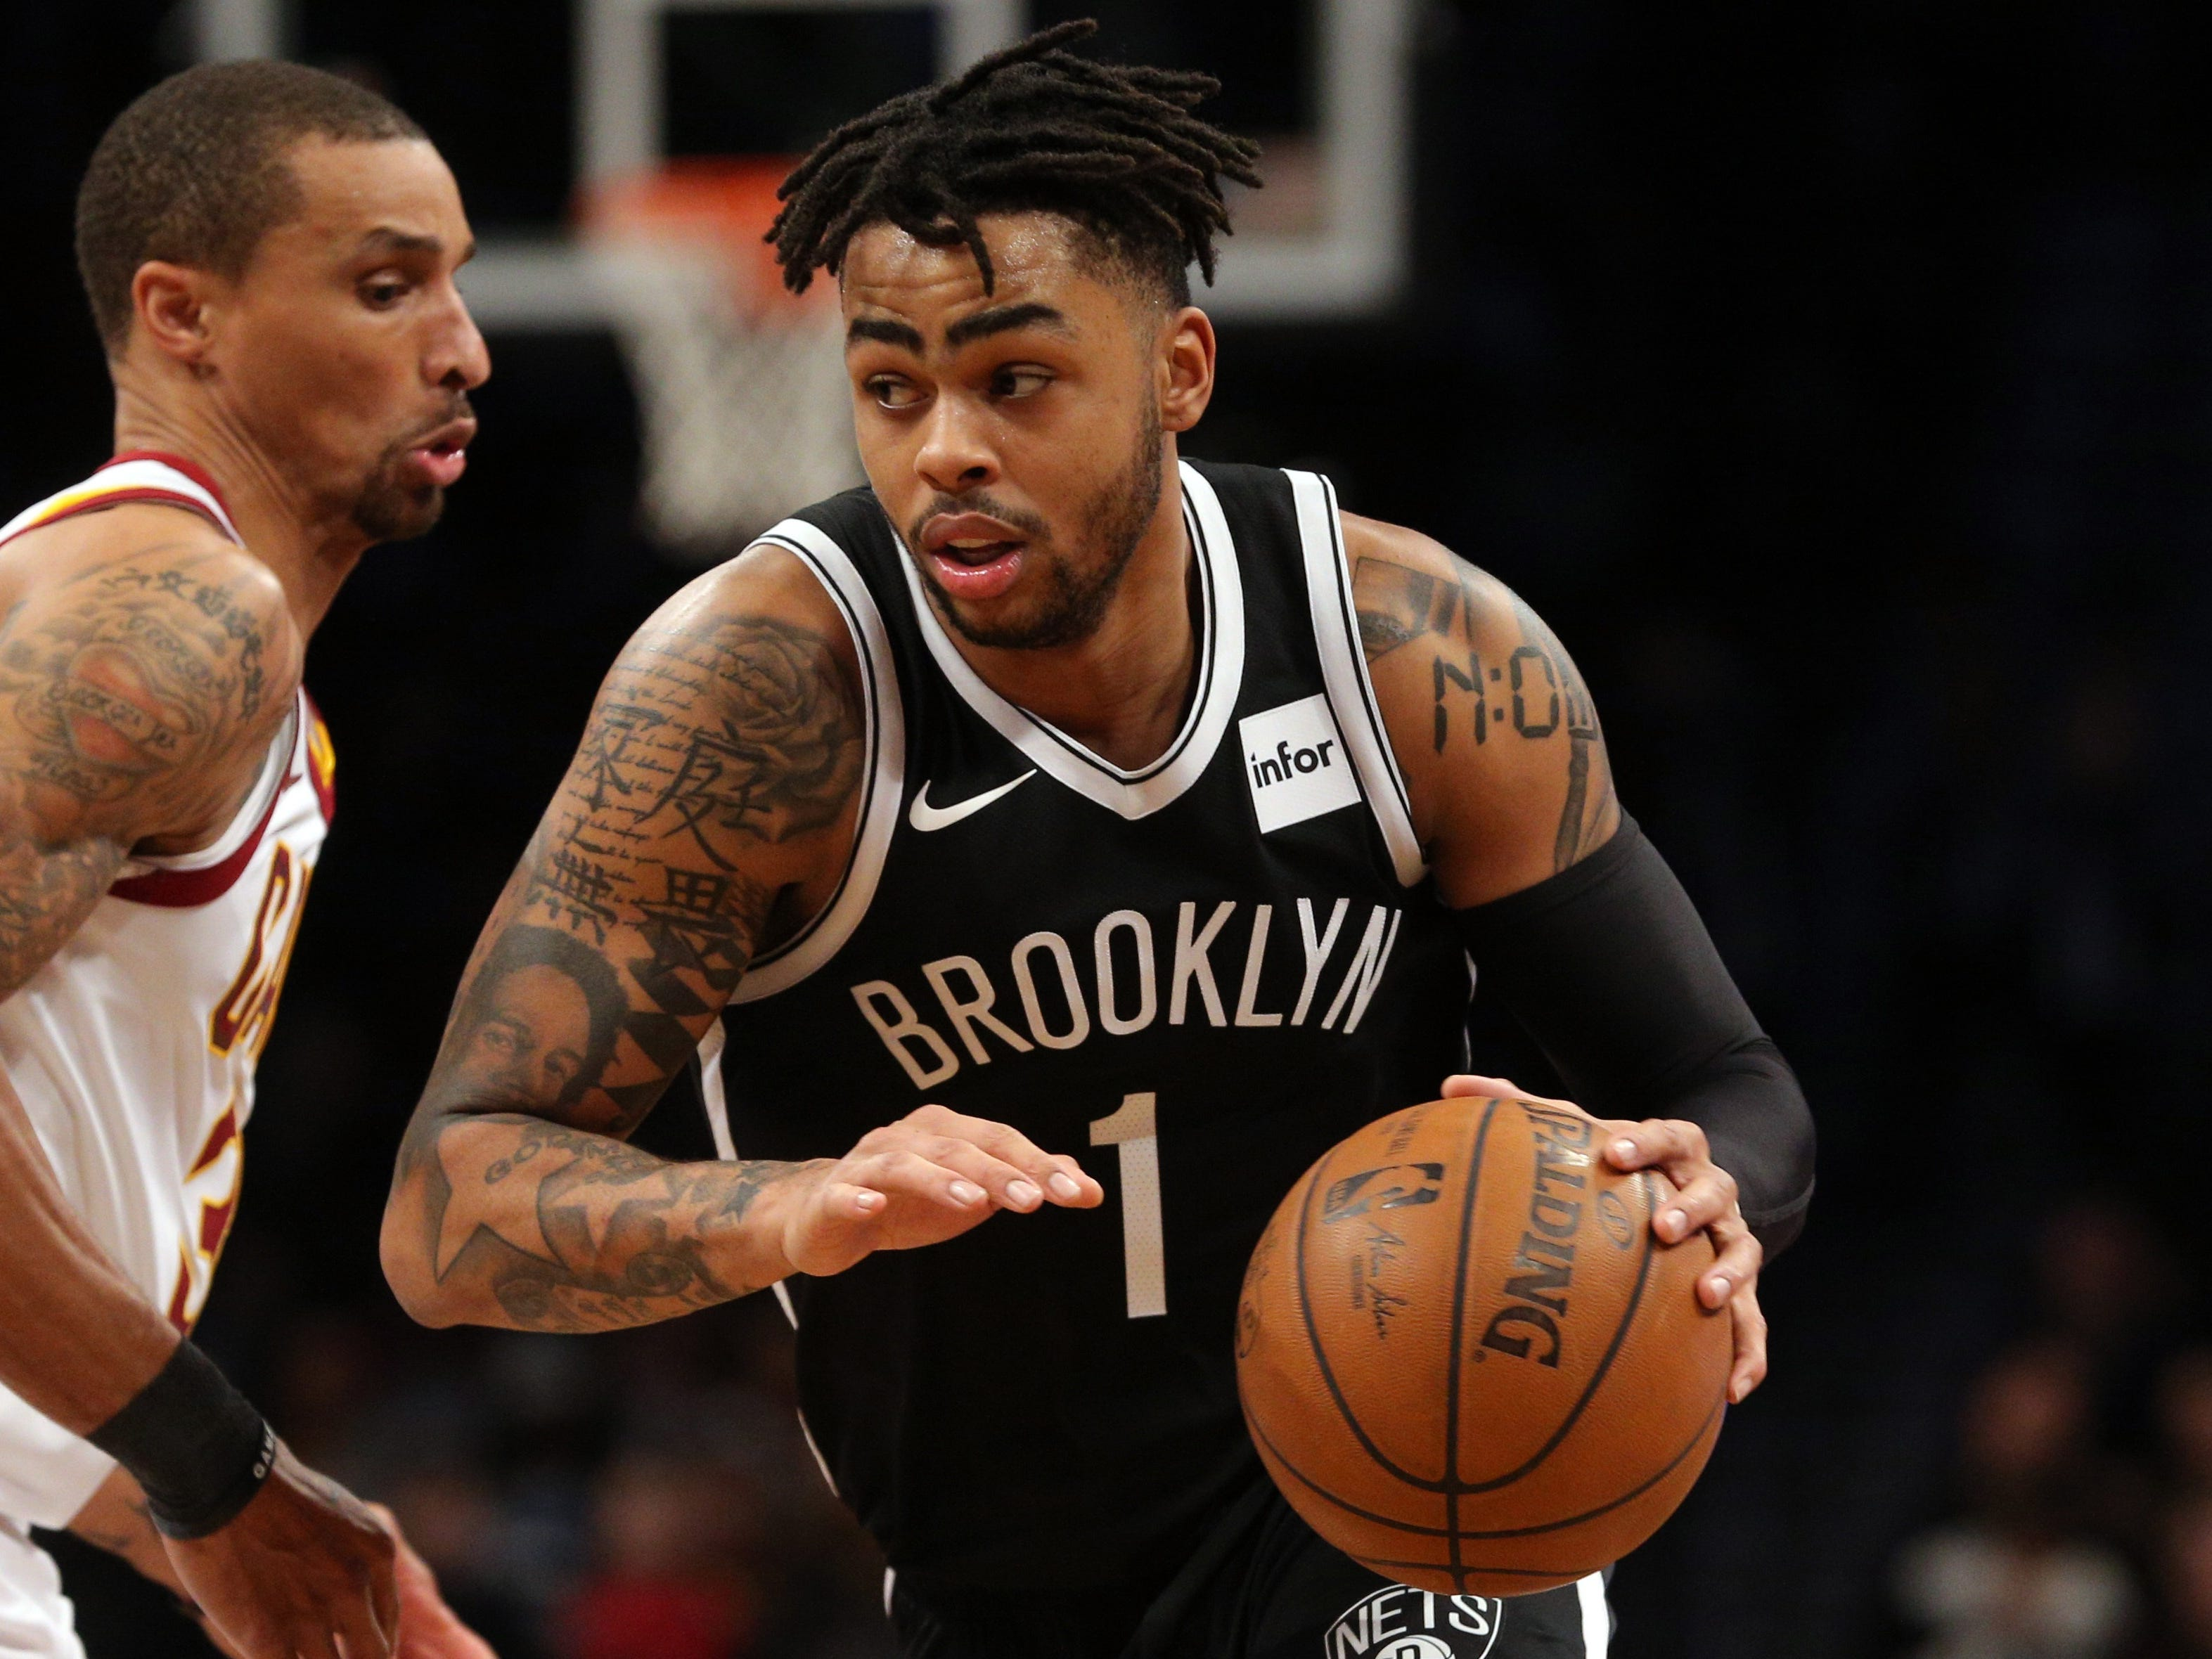 D'Angelo Russell, Brooklyn Nets — 22 (born 2/23/1996)